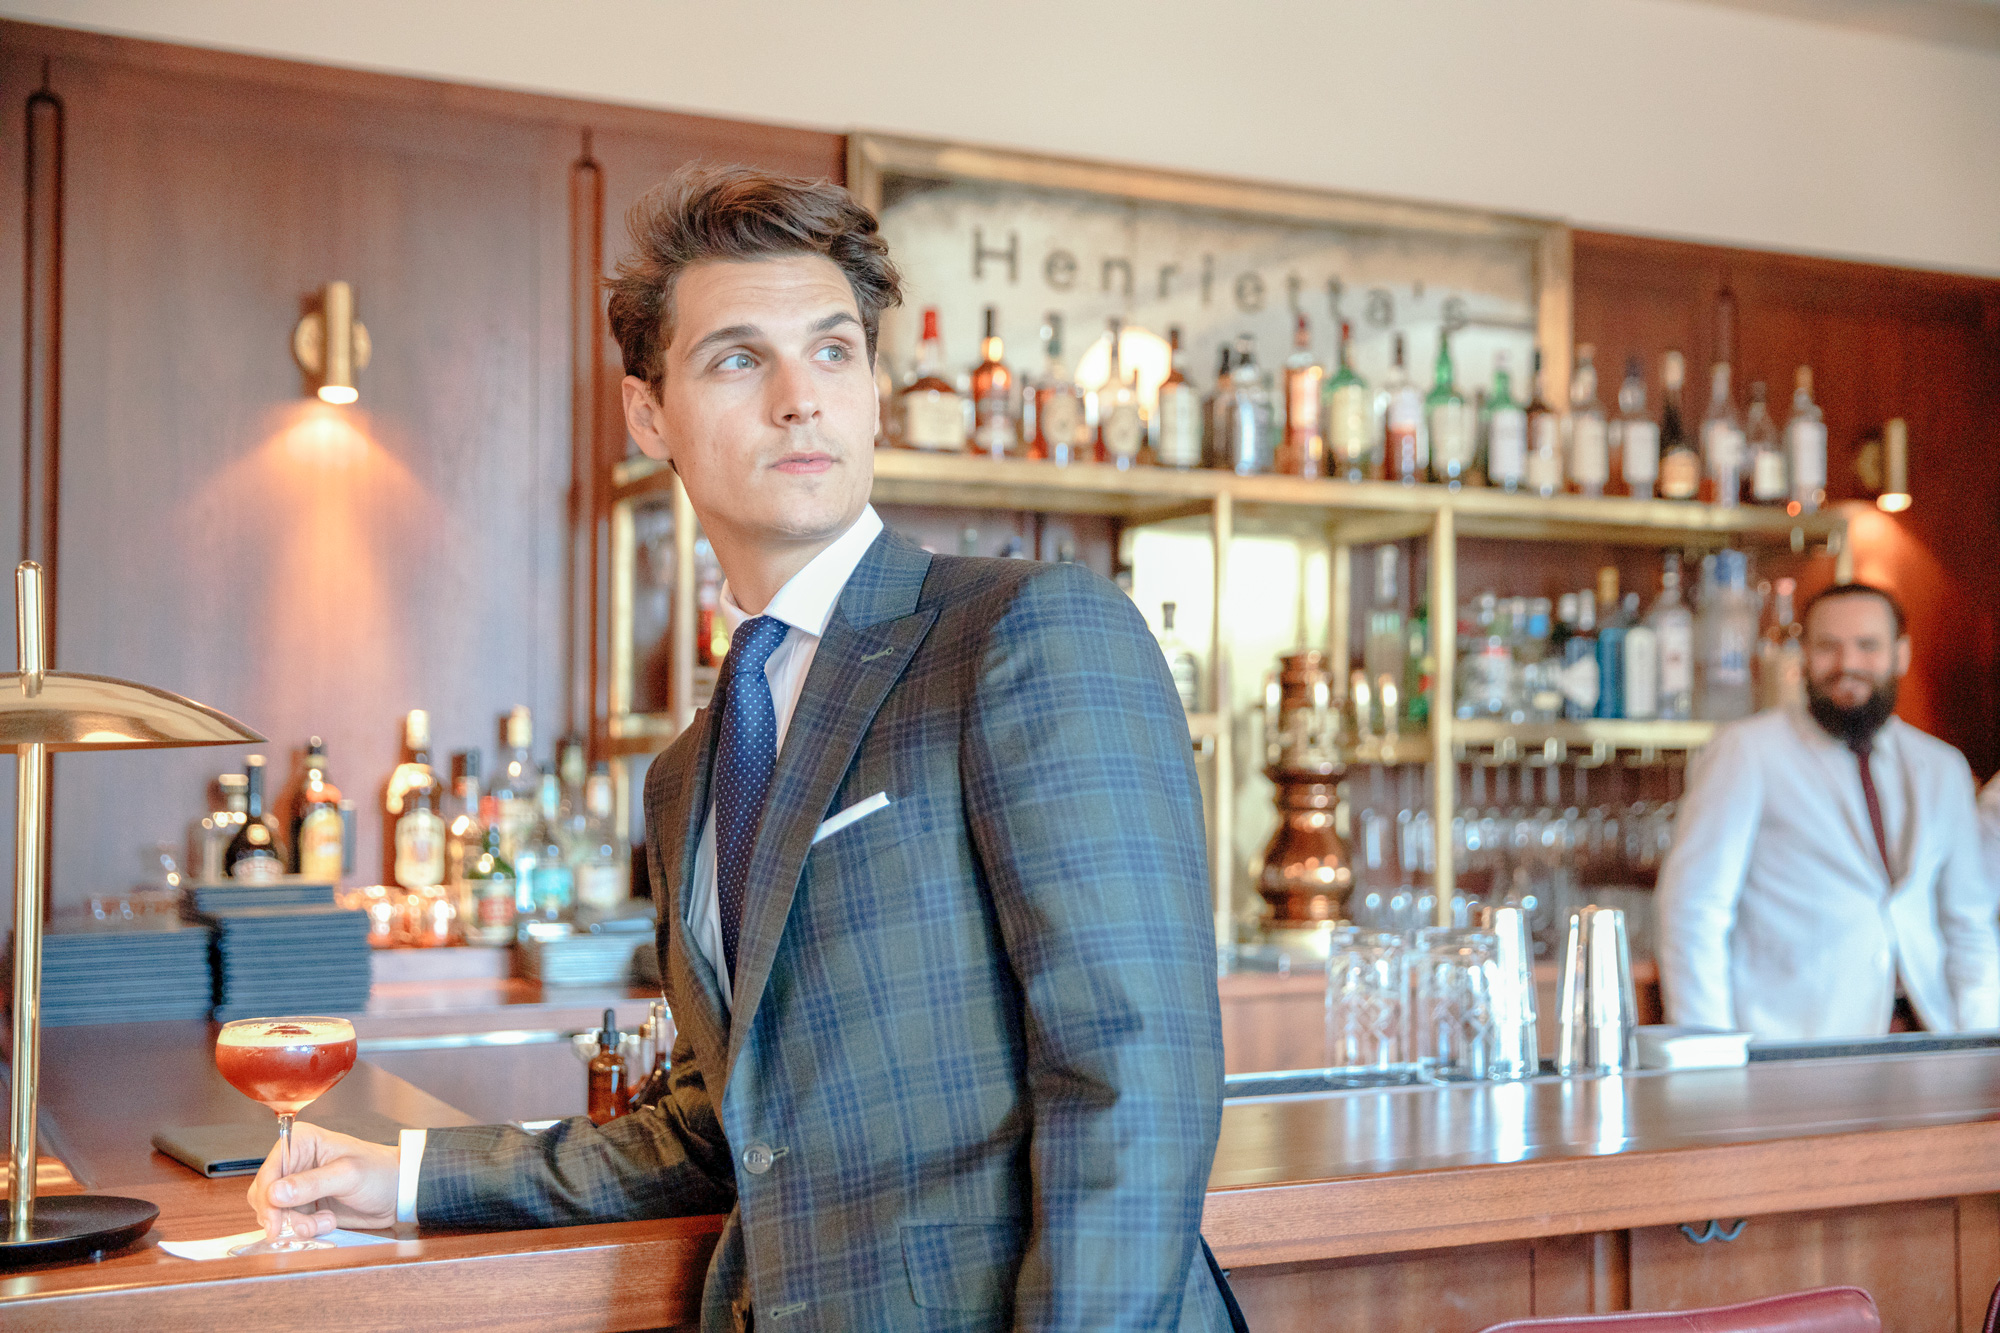 Man in suit at bar